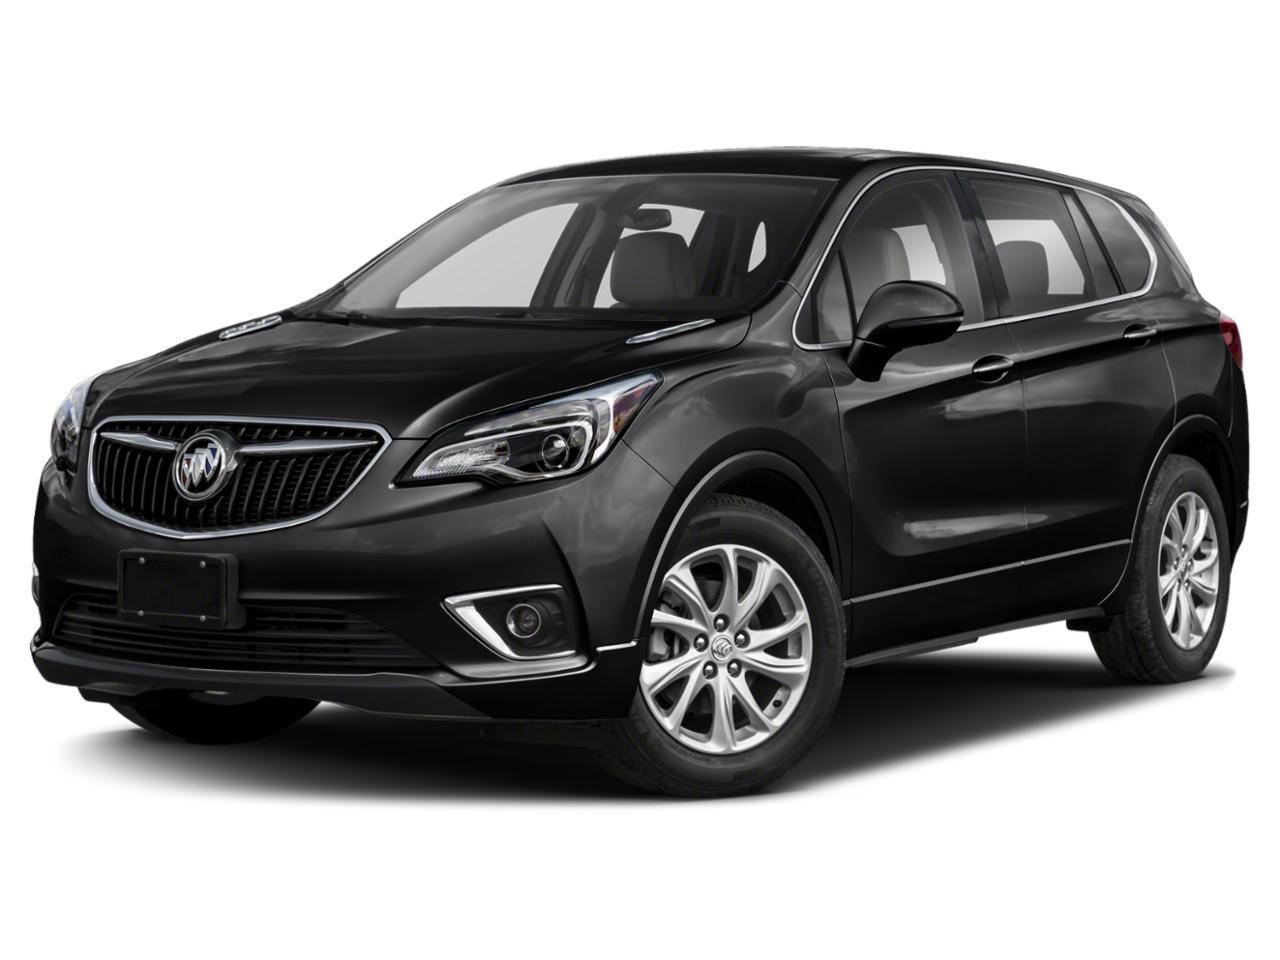 New 2020 Buick Envision For Sale At Griffin Buick Gmc New 2022 Buick Envision Hp, Incentives, Infotainment Manual